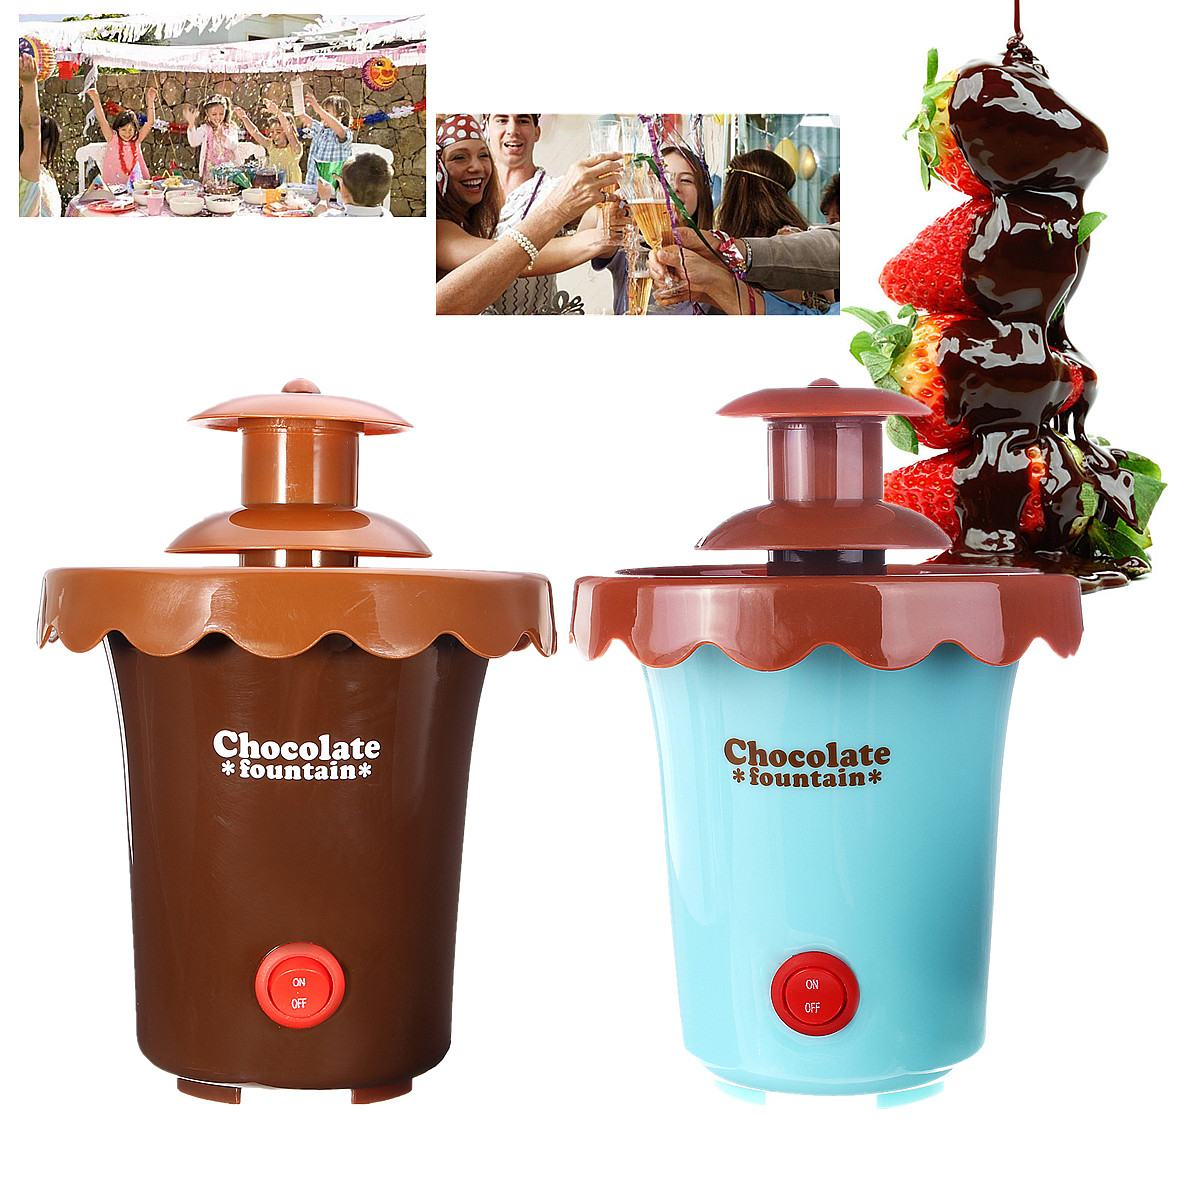 2 Tiers Mini Chocolate Fondue Maker Fountain Party Waterfall Melting Machine for Fruits Marshmallows Cookies Cake Wedding Party image